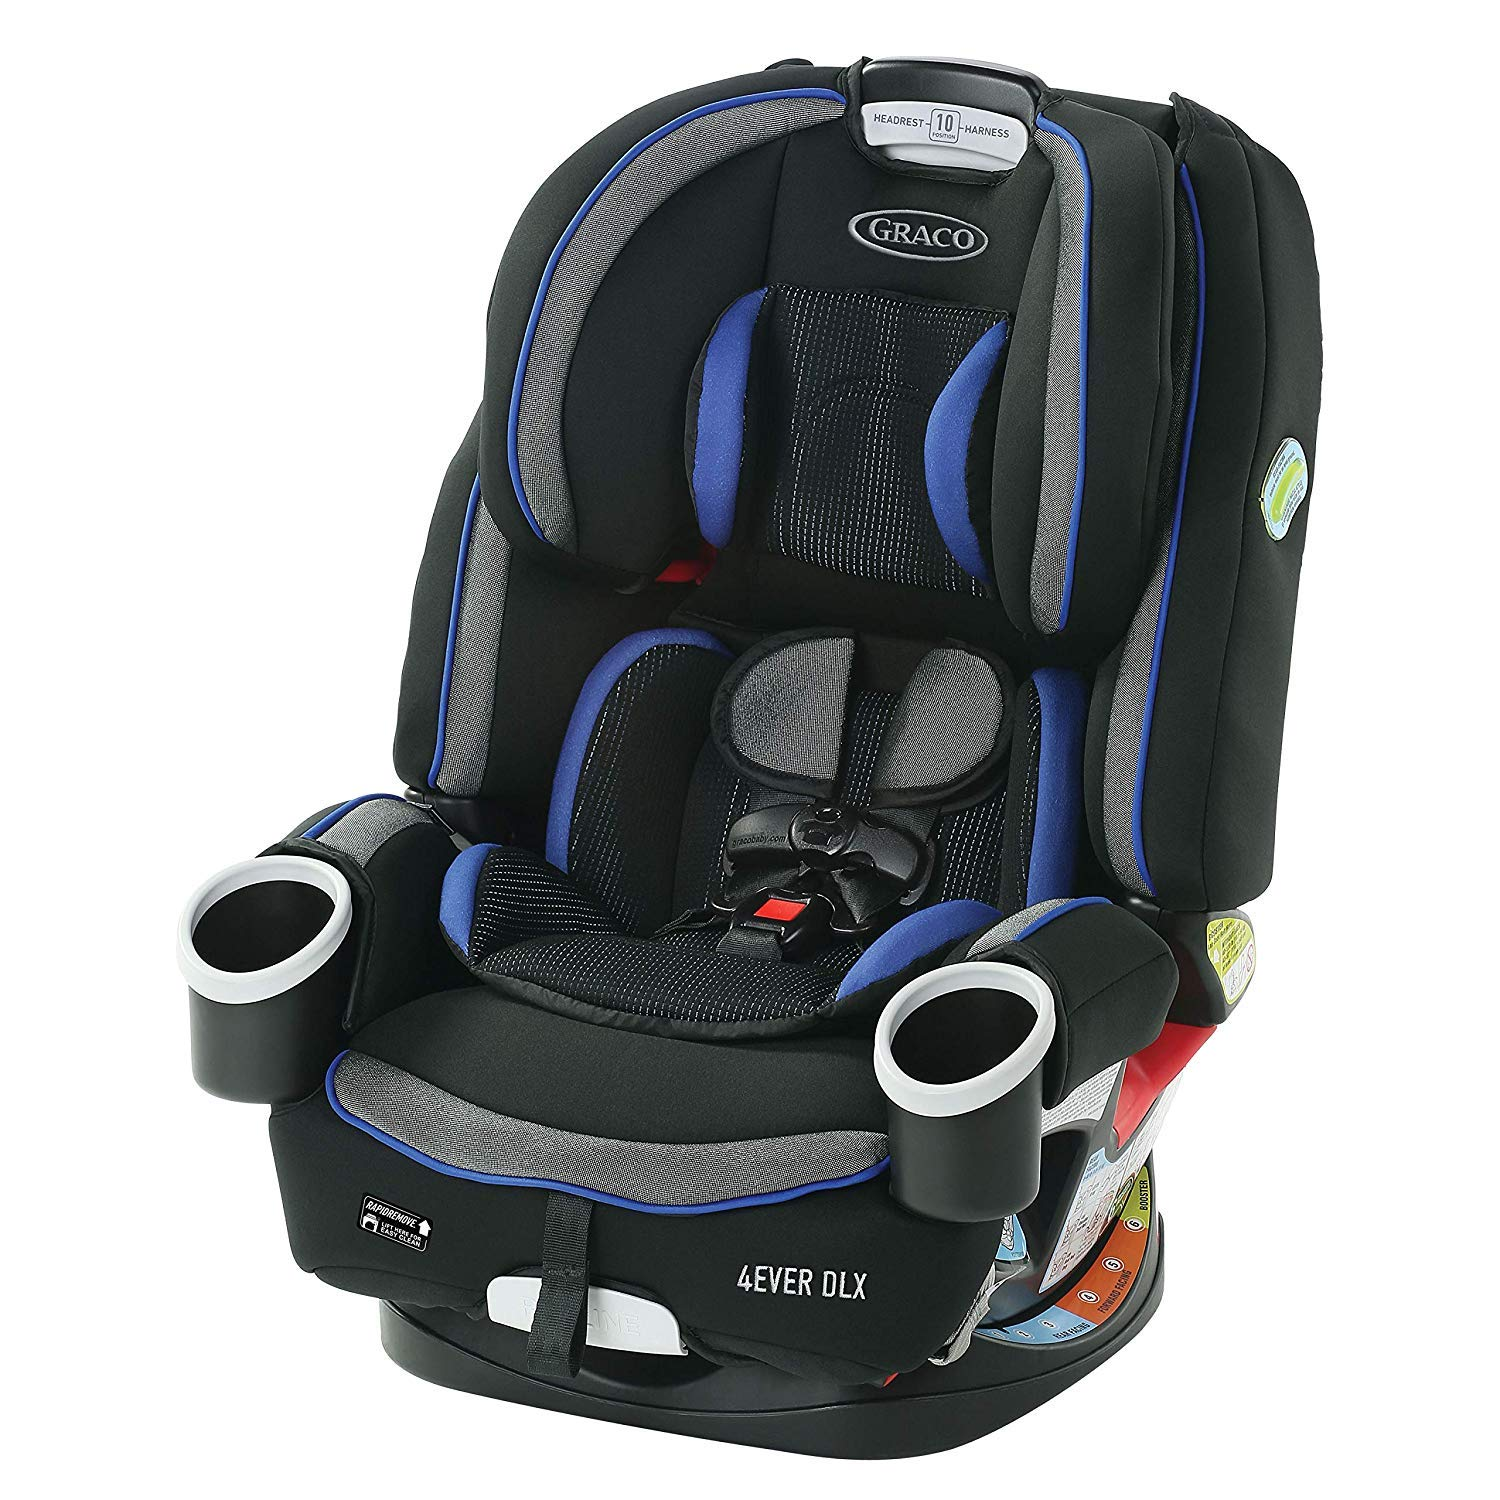 Graco 4Ever DLX 4 in 1 Car Seat Top rated Car Seat for 4 year old